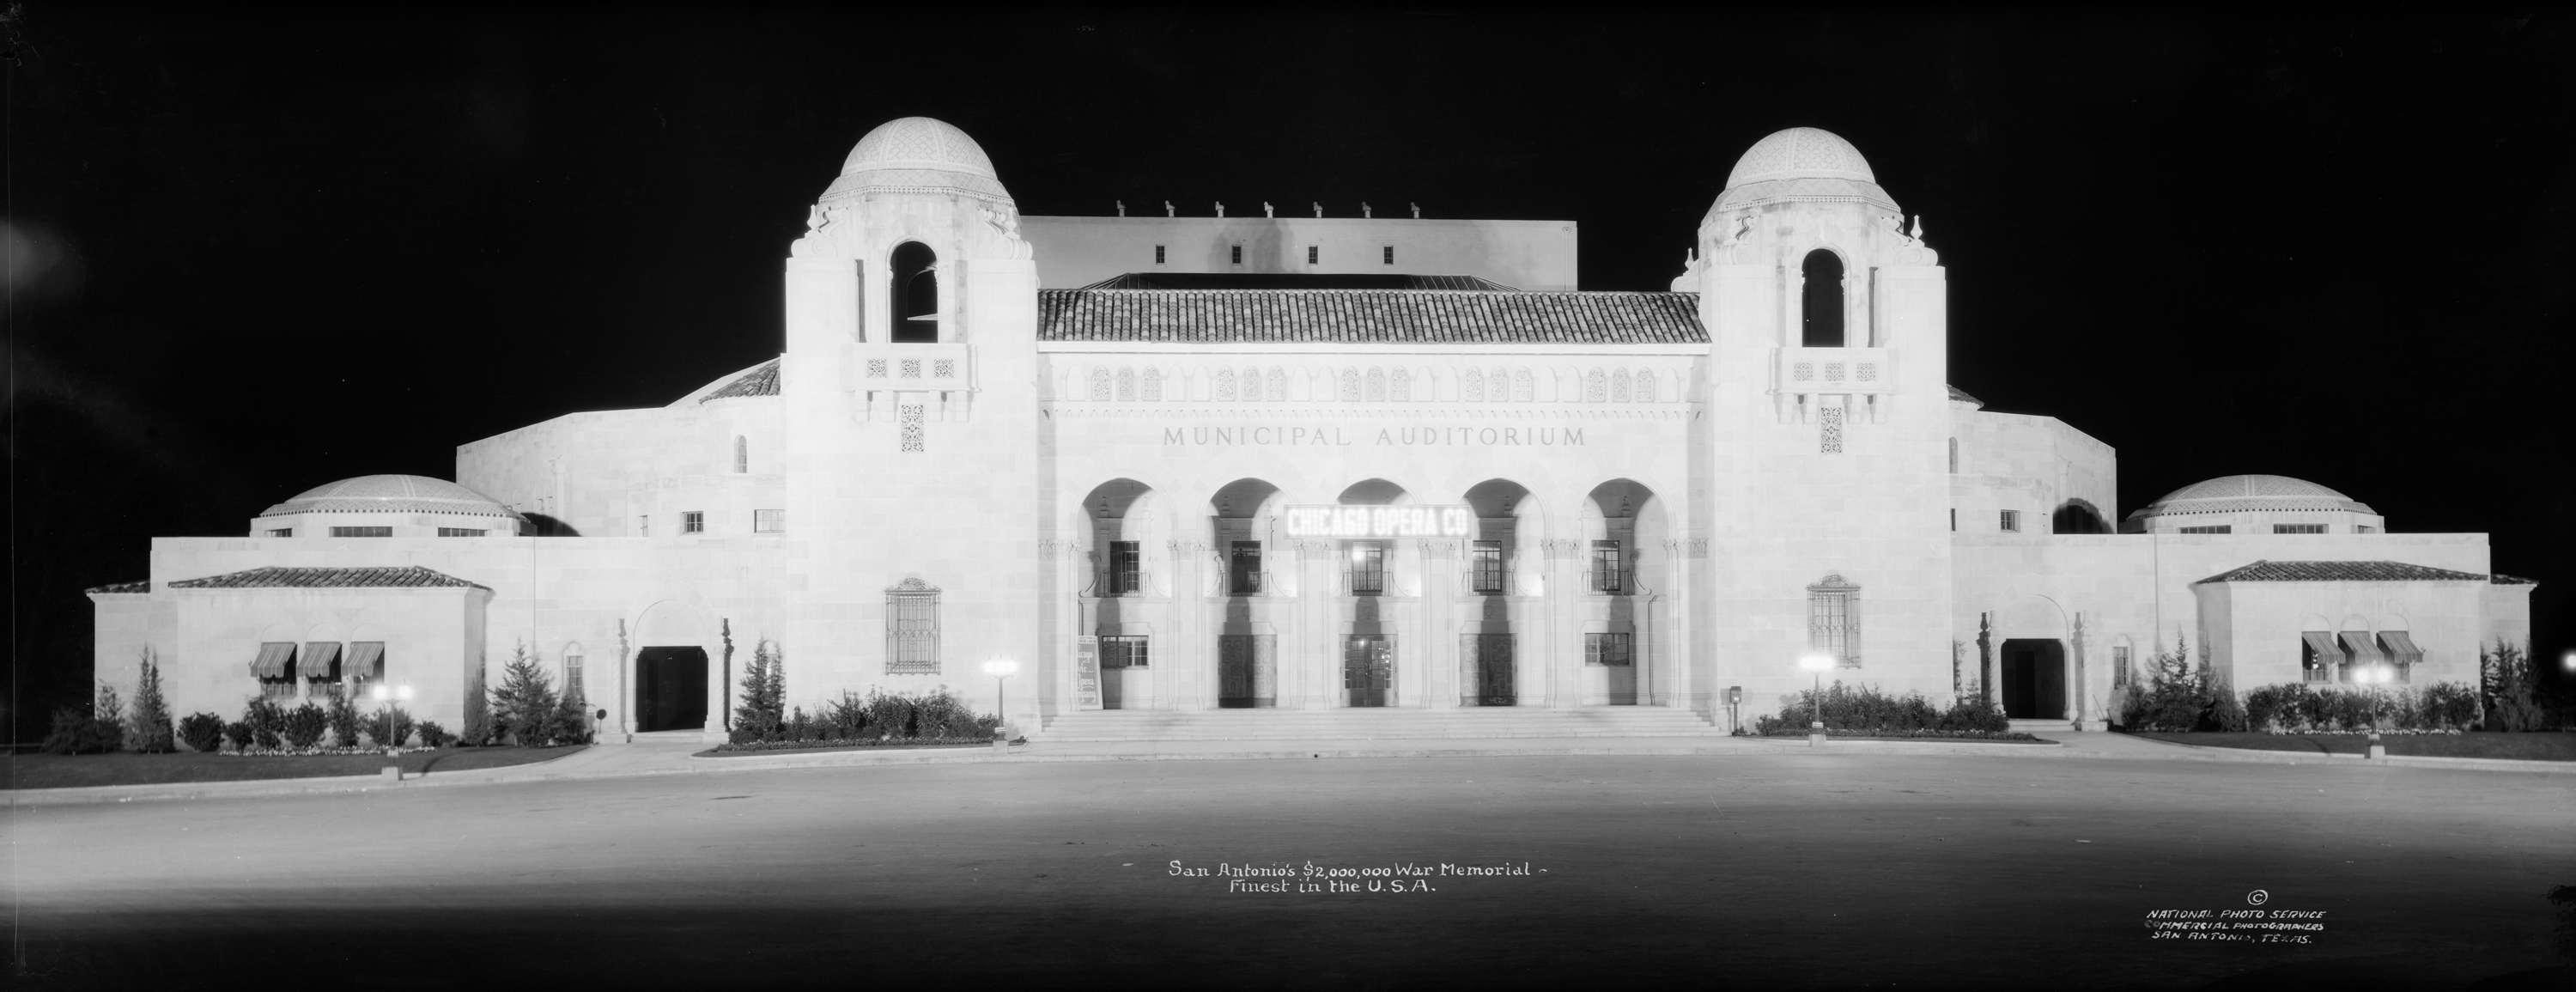 E. O. (Eugene Omar) Goldbeck (American, 1892­–1986), San Antonio's $2,000,000 War Memorial. Finest in the U.S. A., ca. 1926. Digital positive from nitrate negative, 19.6 x 49.9 cm. E. O. Goldbeck papers and photography collection, 967:0068:0092